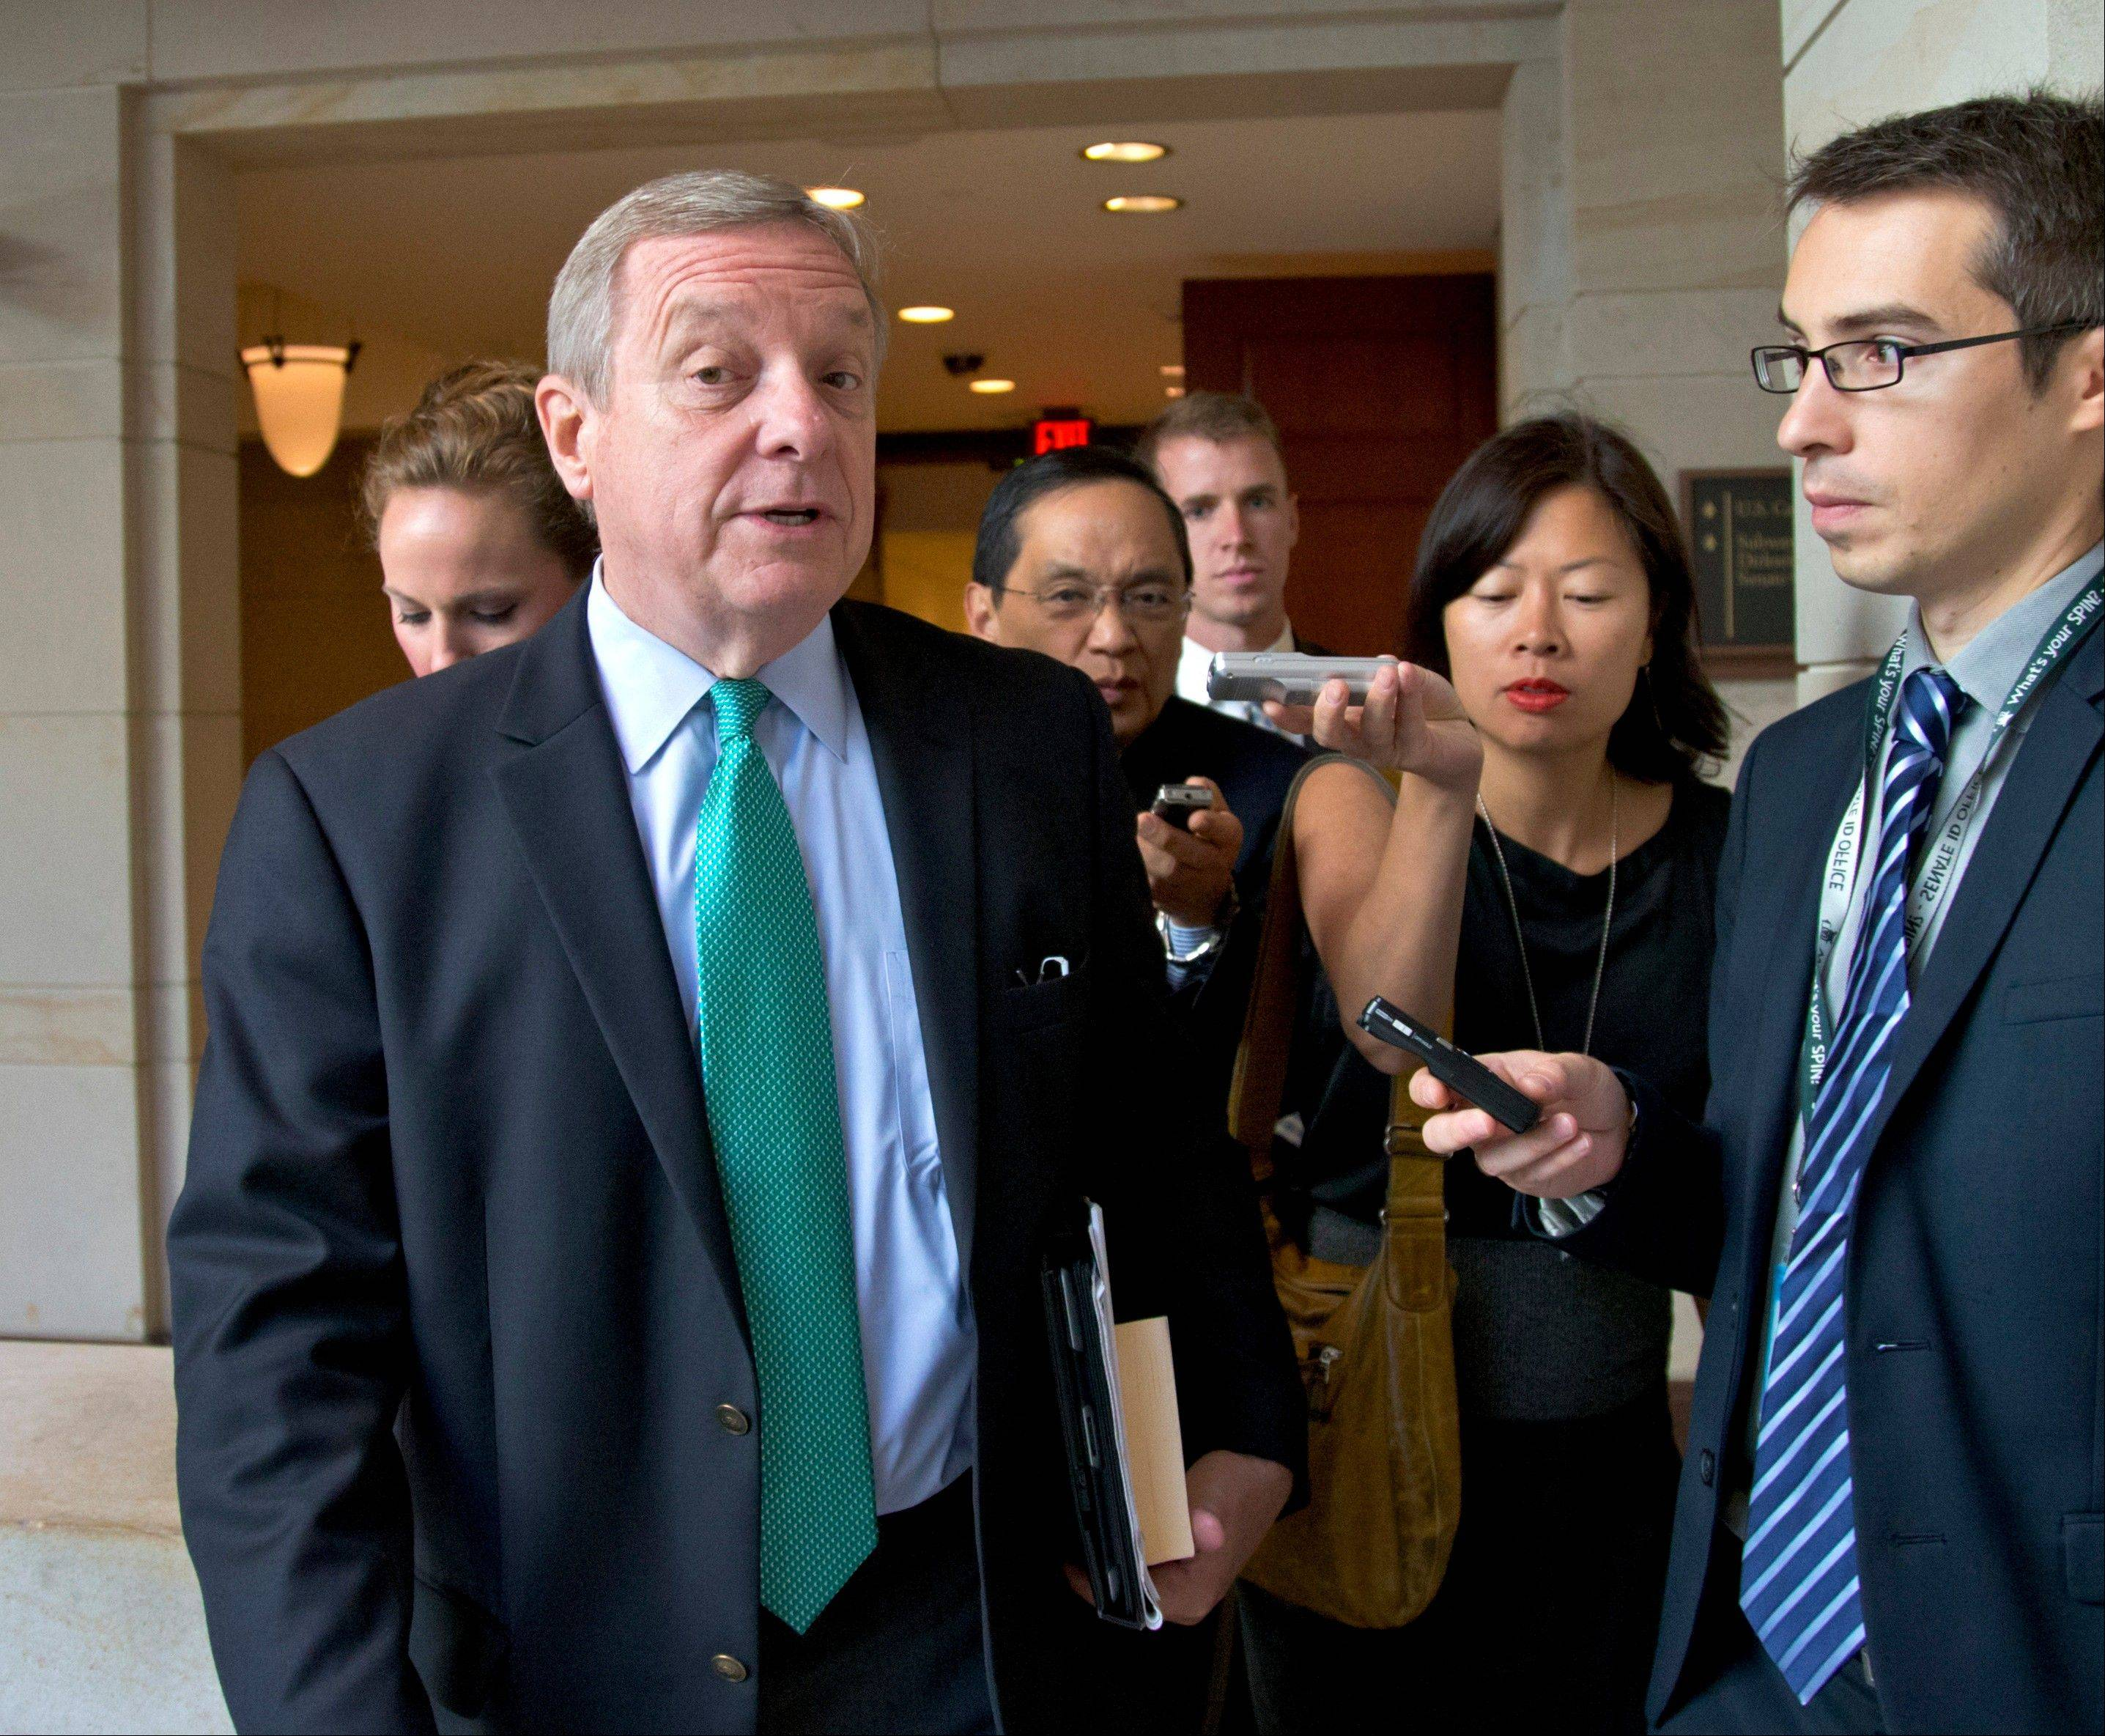 Illinois Sen. Dick Durbin, the Senate assistant Democratic majority leader, walks at the Capitol in Washington. An unusual alliance of tea party enthusiasts and liberal leaders in Congress is pursuing major changes in mandatory sentencing laws.